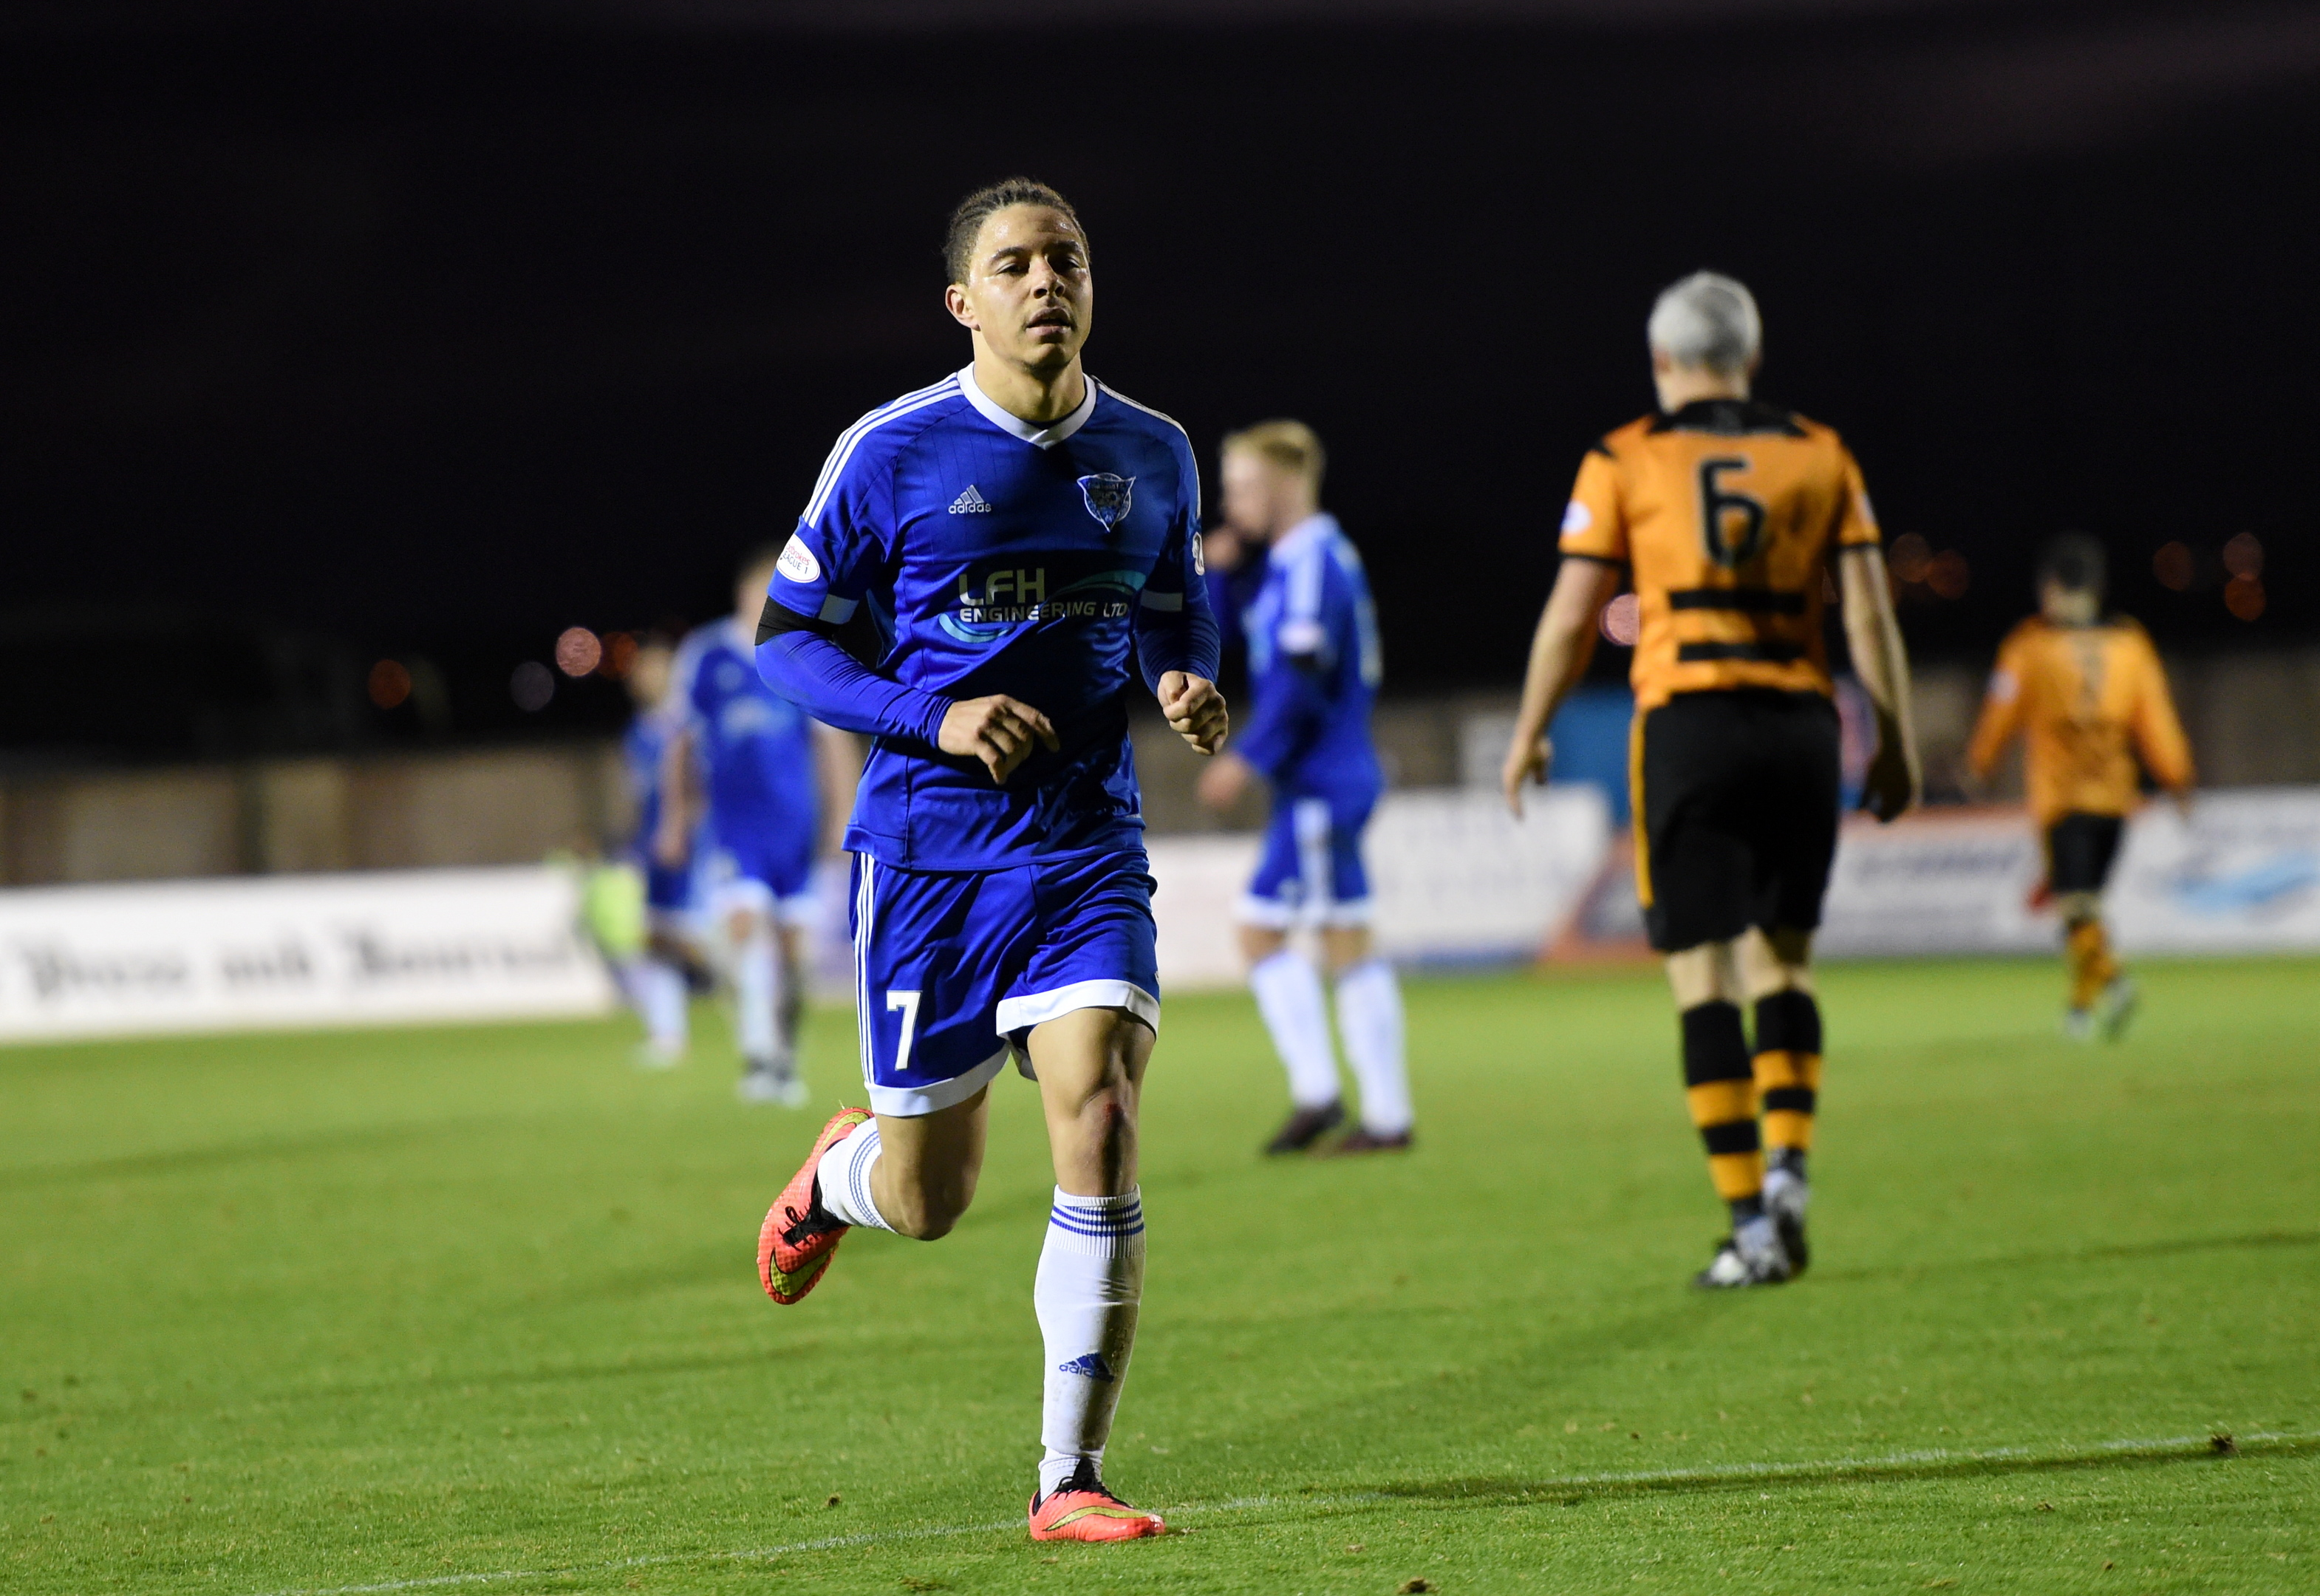 The door has opened again for Peterhead's Leighton McIntosh.